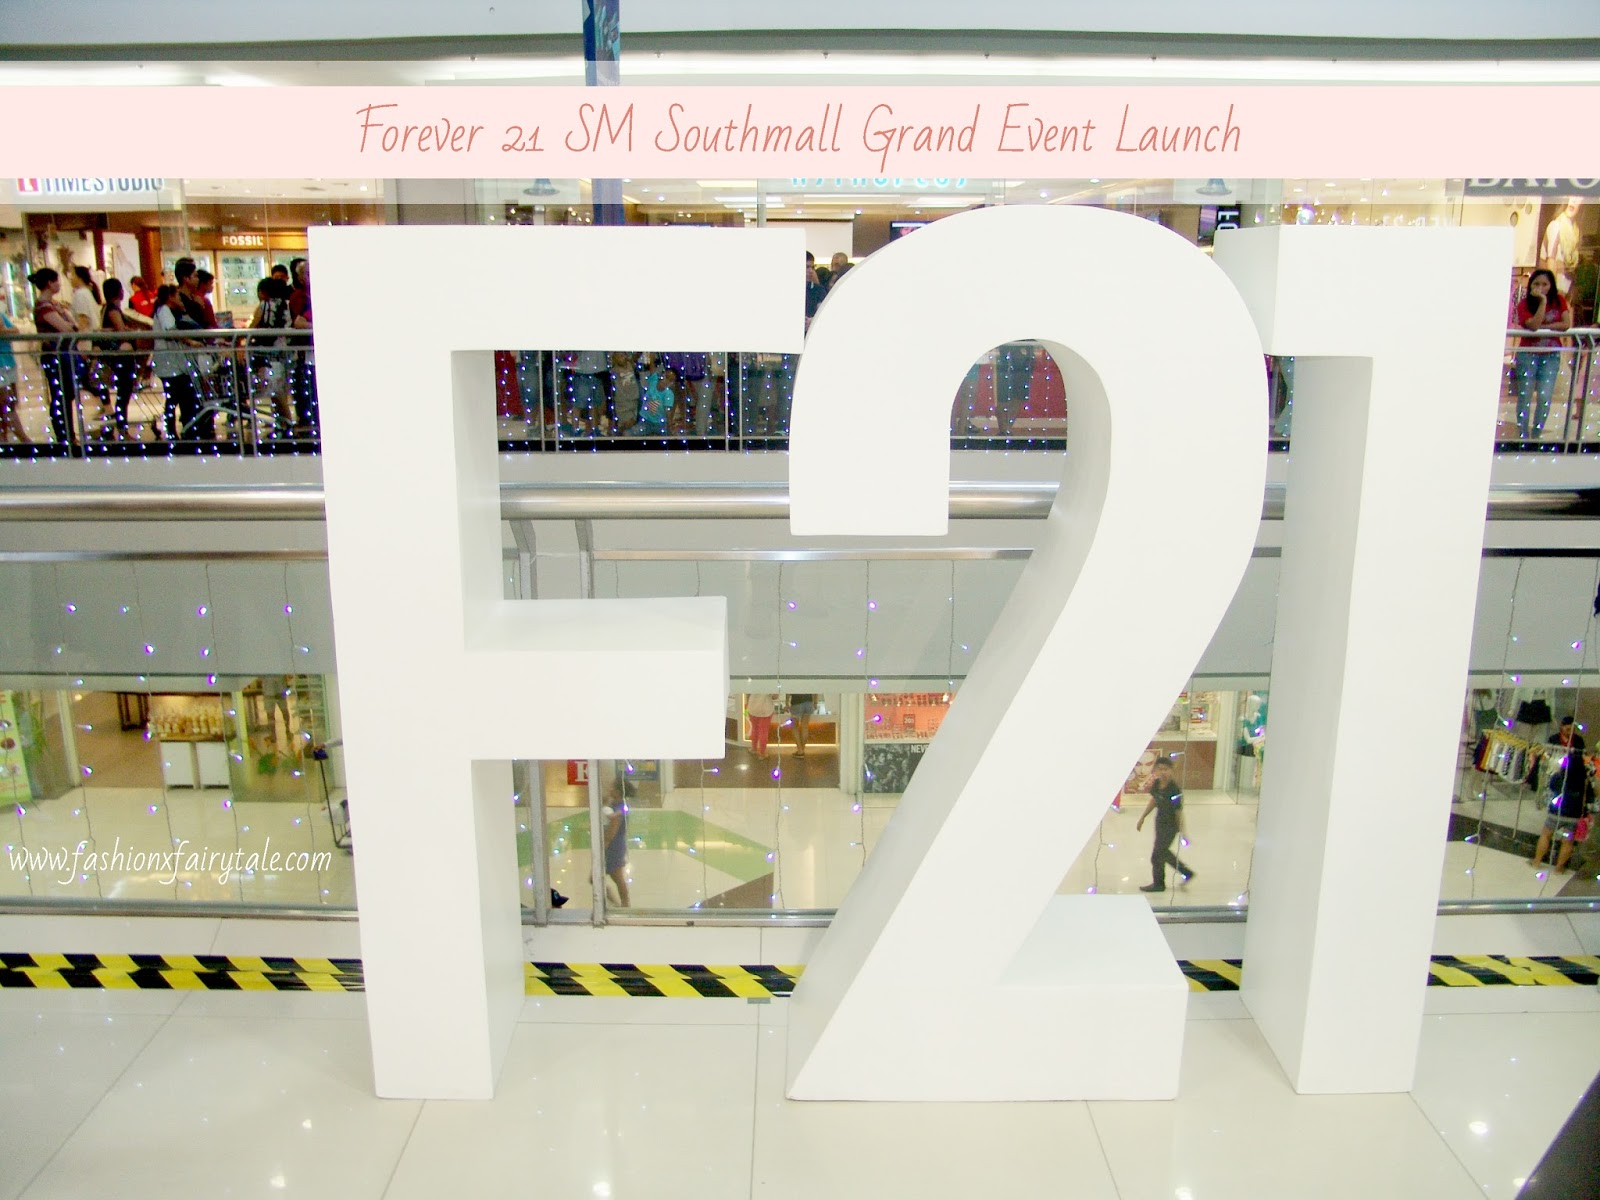 Forever 21 SM Southmall Grand Event Launch